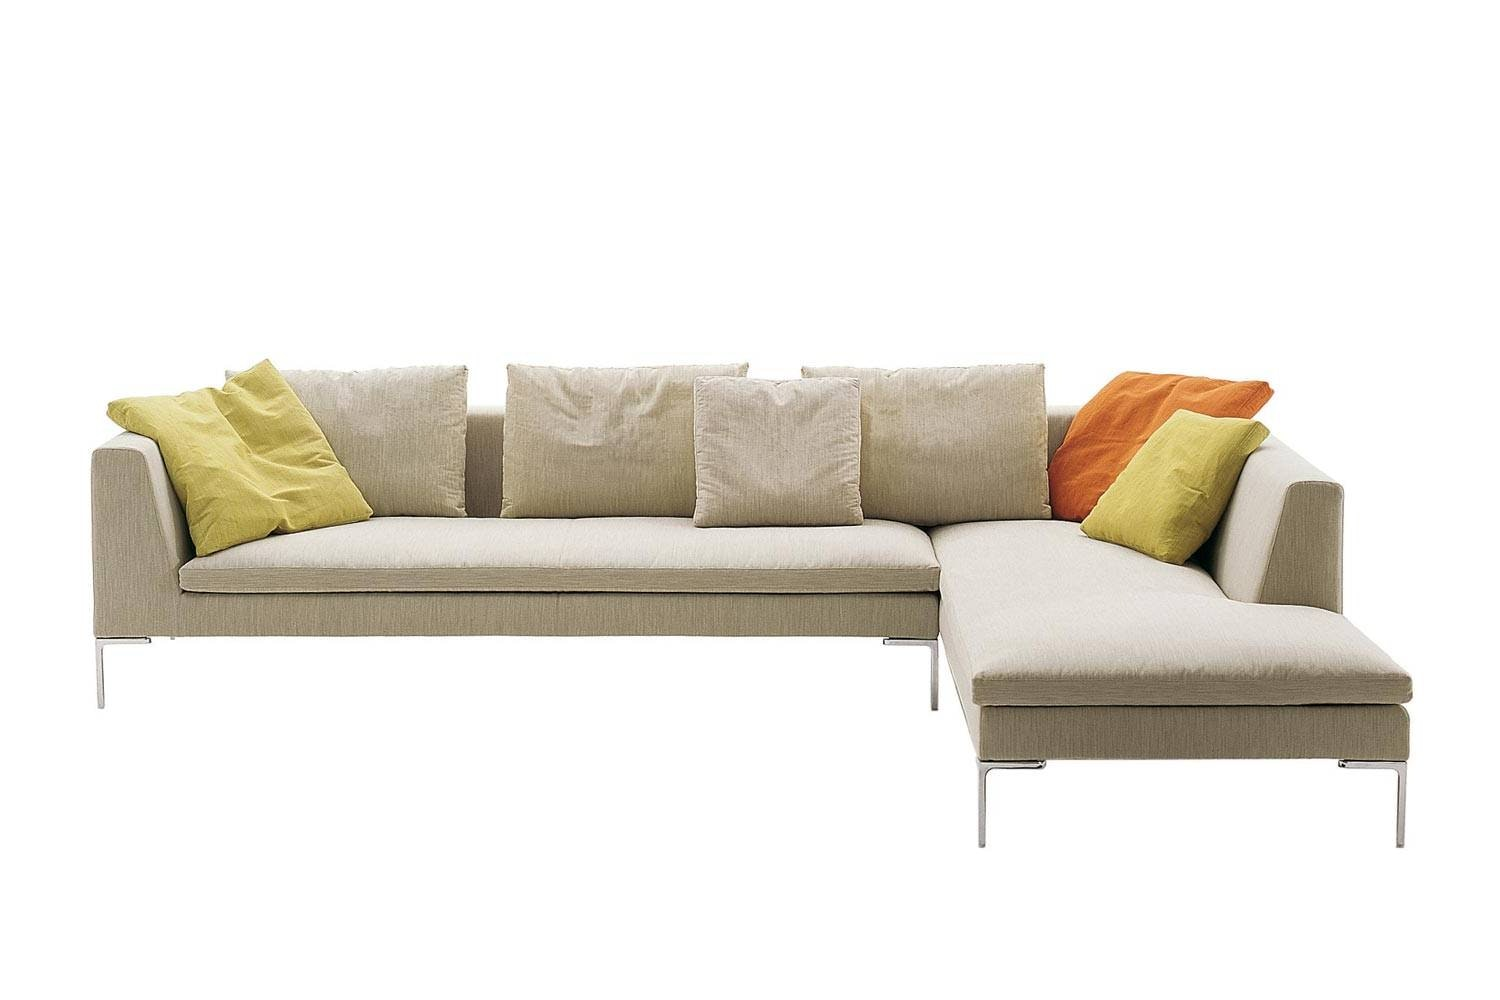 Charles Sofa with Right Chaise in Dark Fabric by Antonio Citterio for B&B Italia